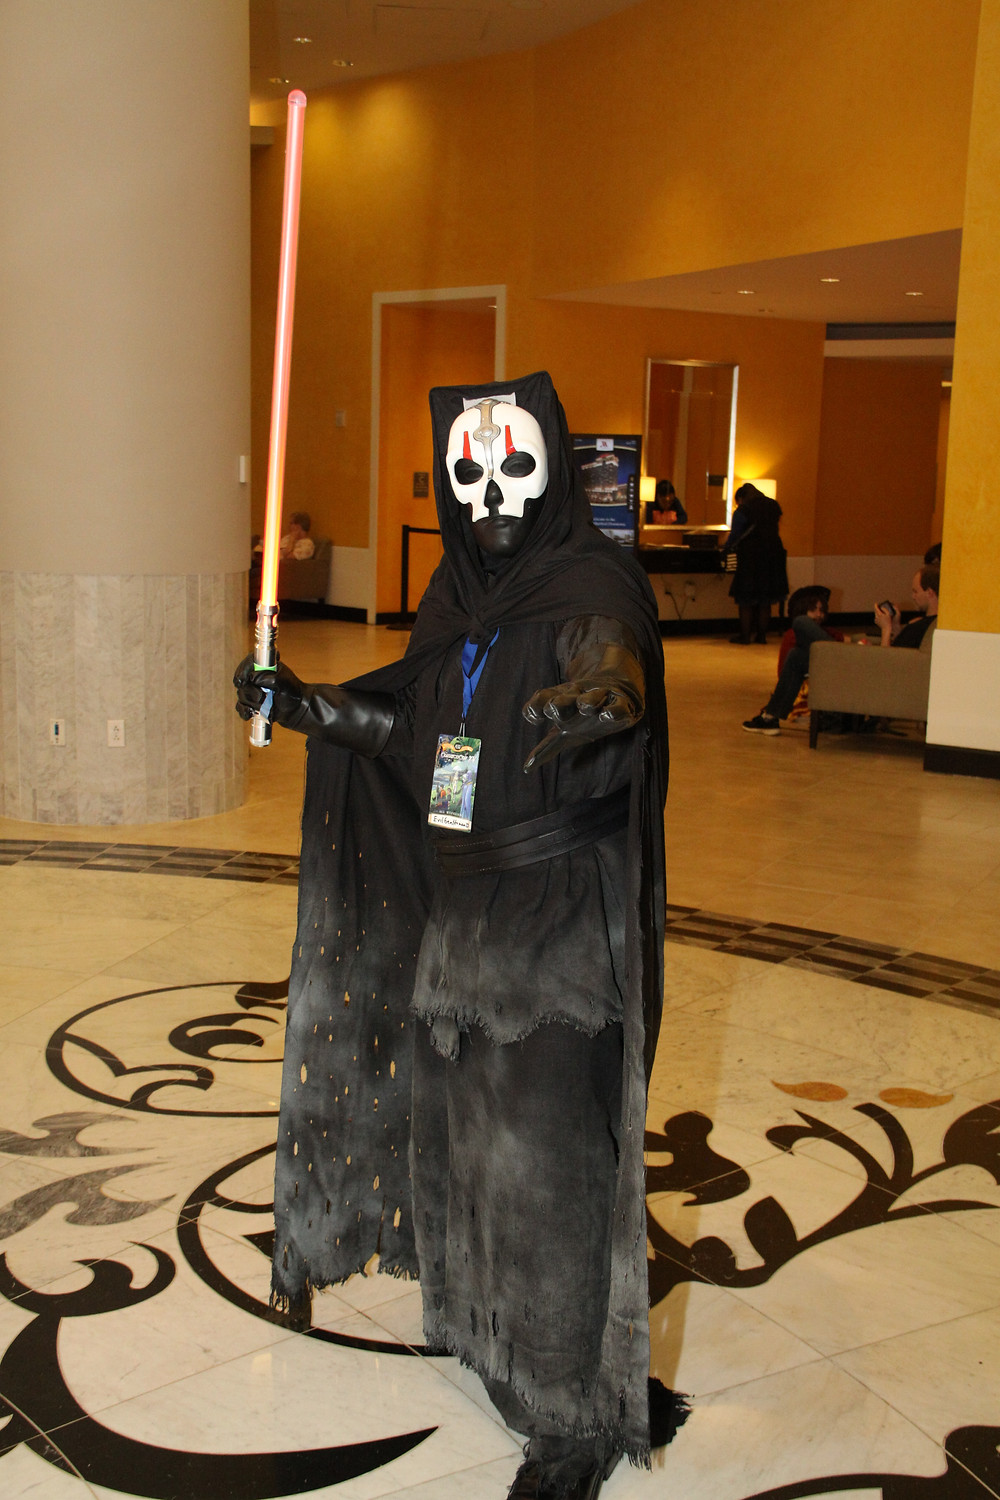 Darth Nihilus (Kotor 2).  He's just a man under that mask.